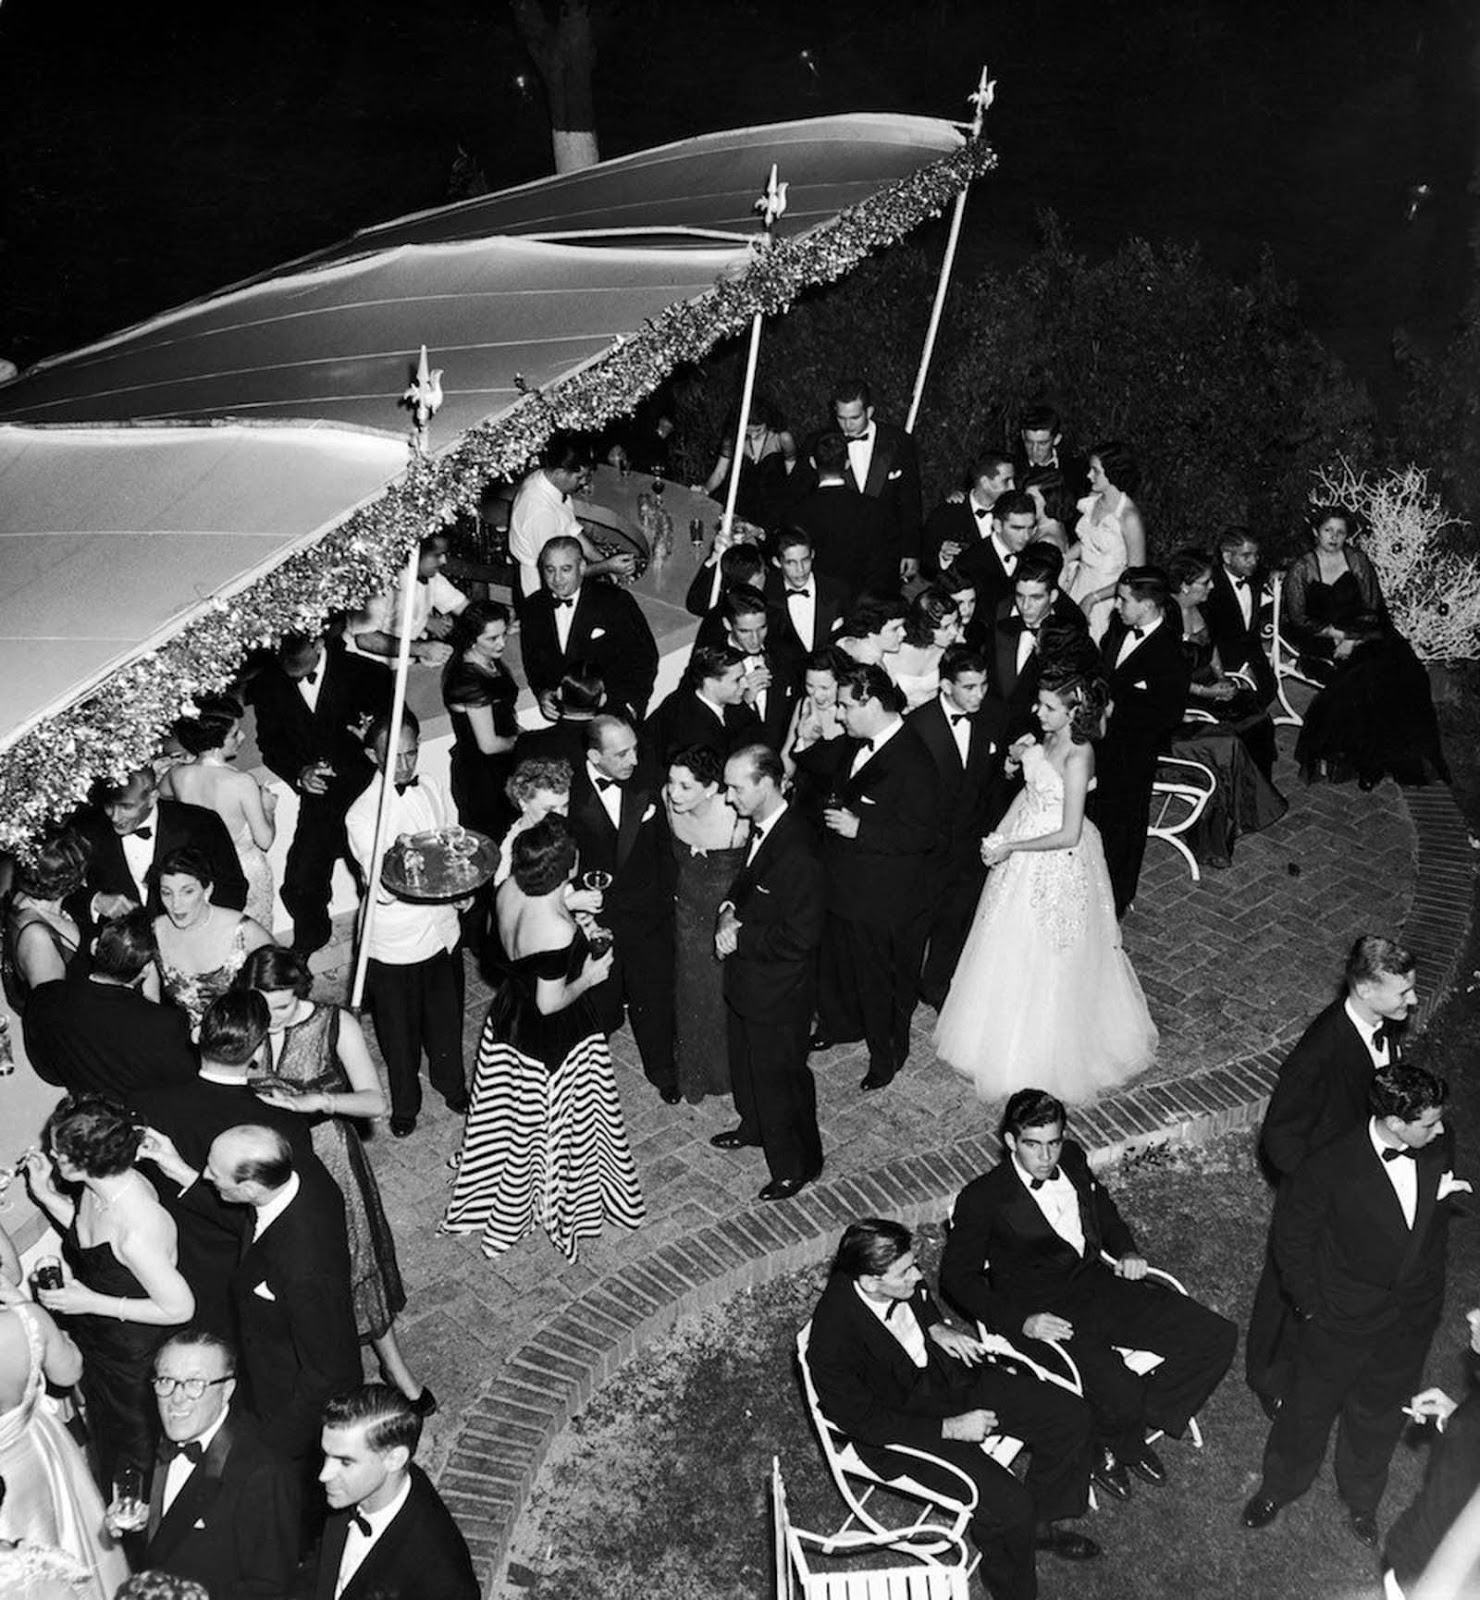 Socialites party under silk canopies in Havana. c. 1950.